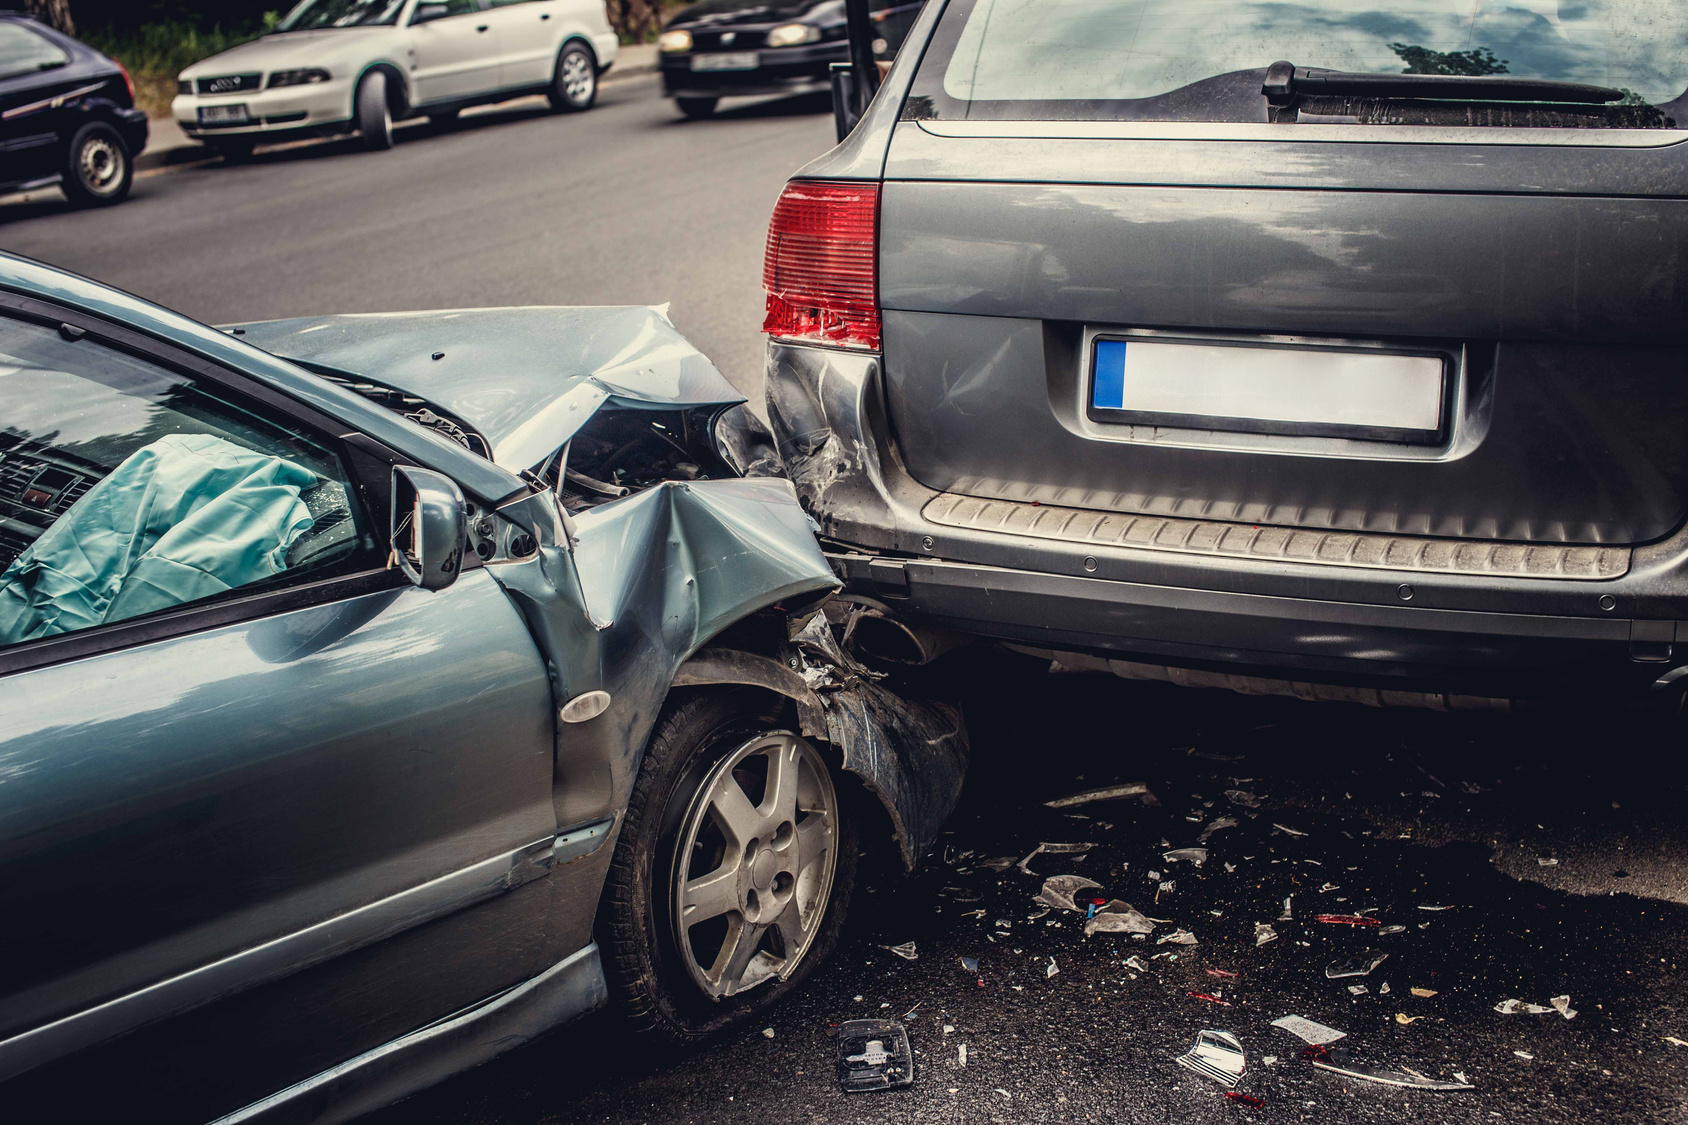 Trauma Expected with an Auto Accident